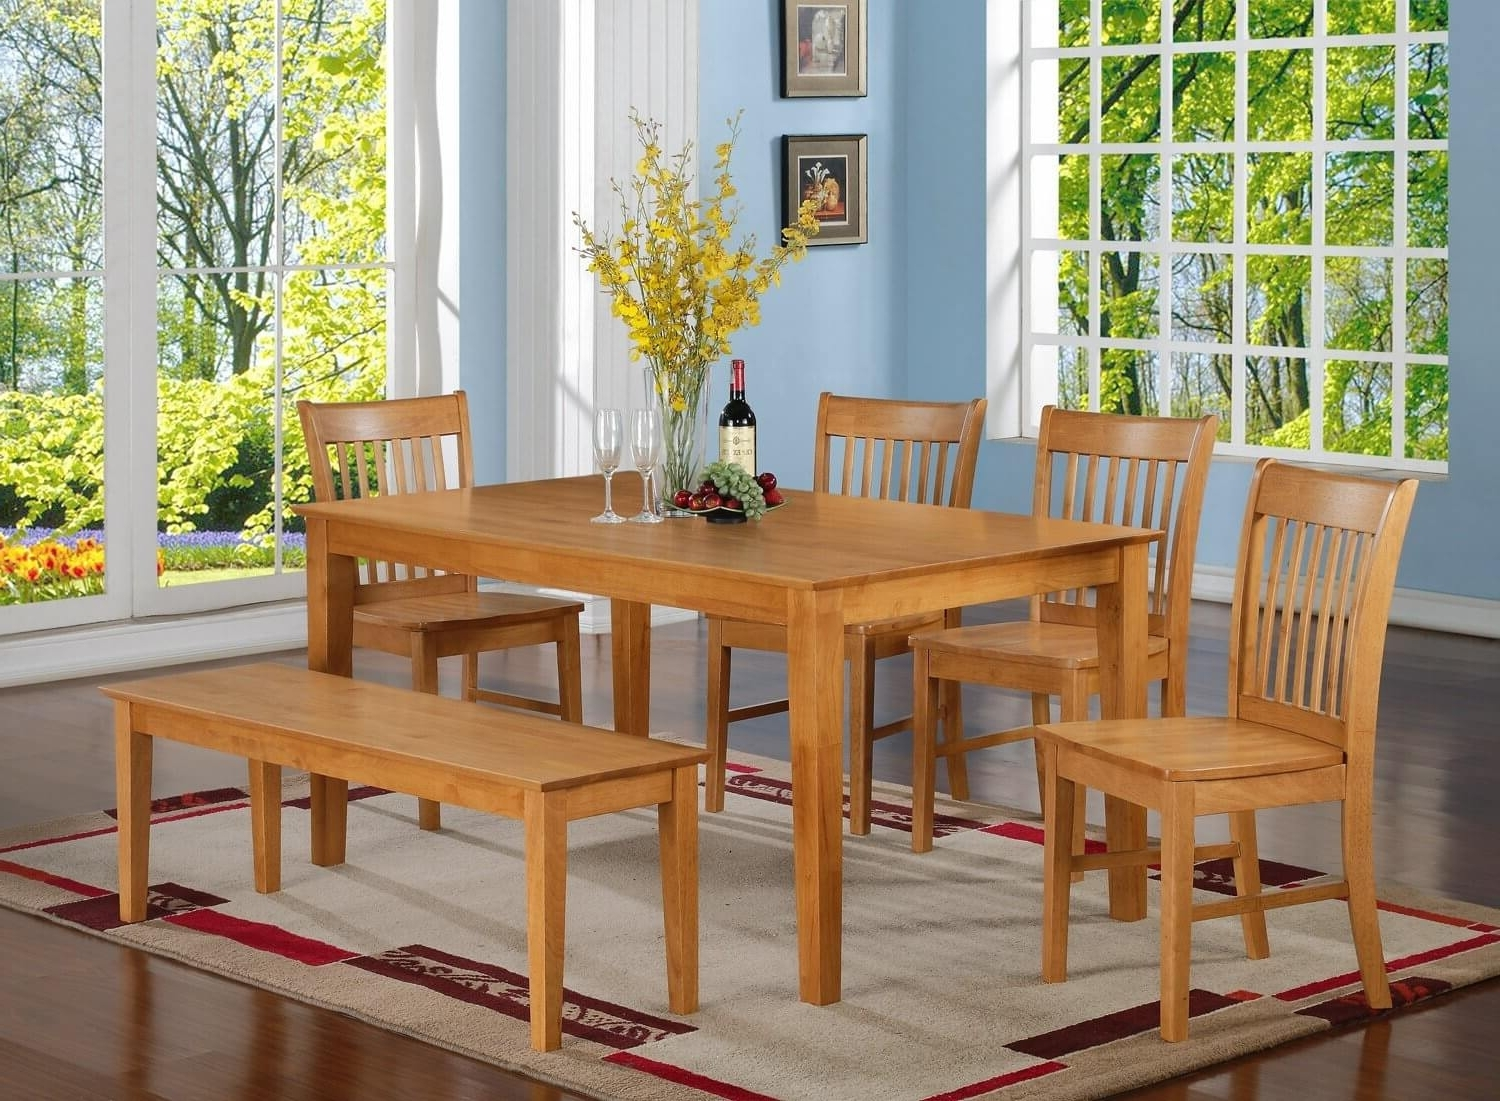 Most Recently Released 26 Dining Room Sets (Big And Small) With Bench Seating (2018) In Dining Tables Bench Seat With Back (View 20 of 25)